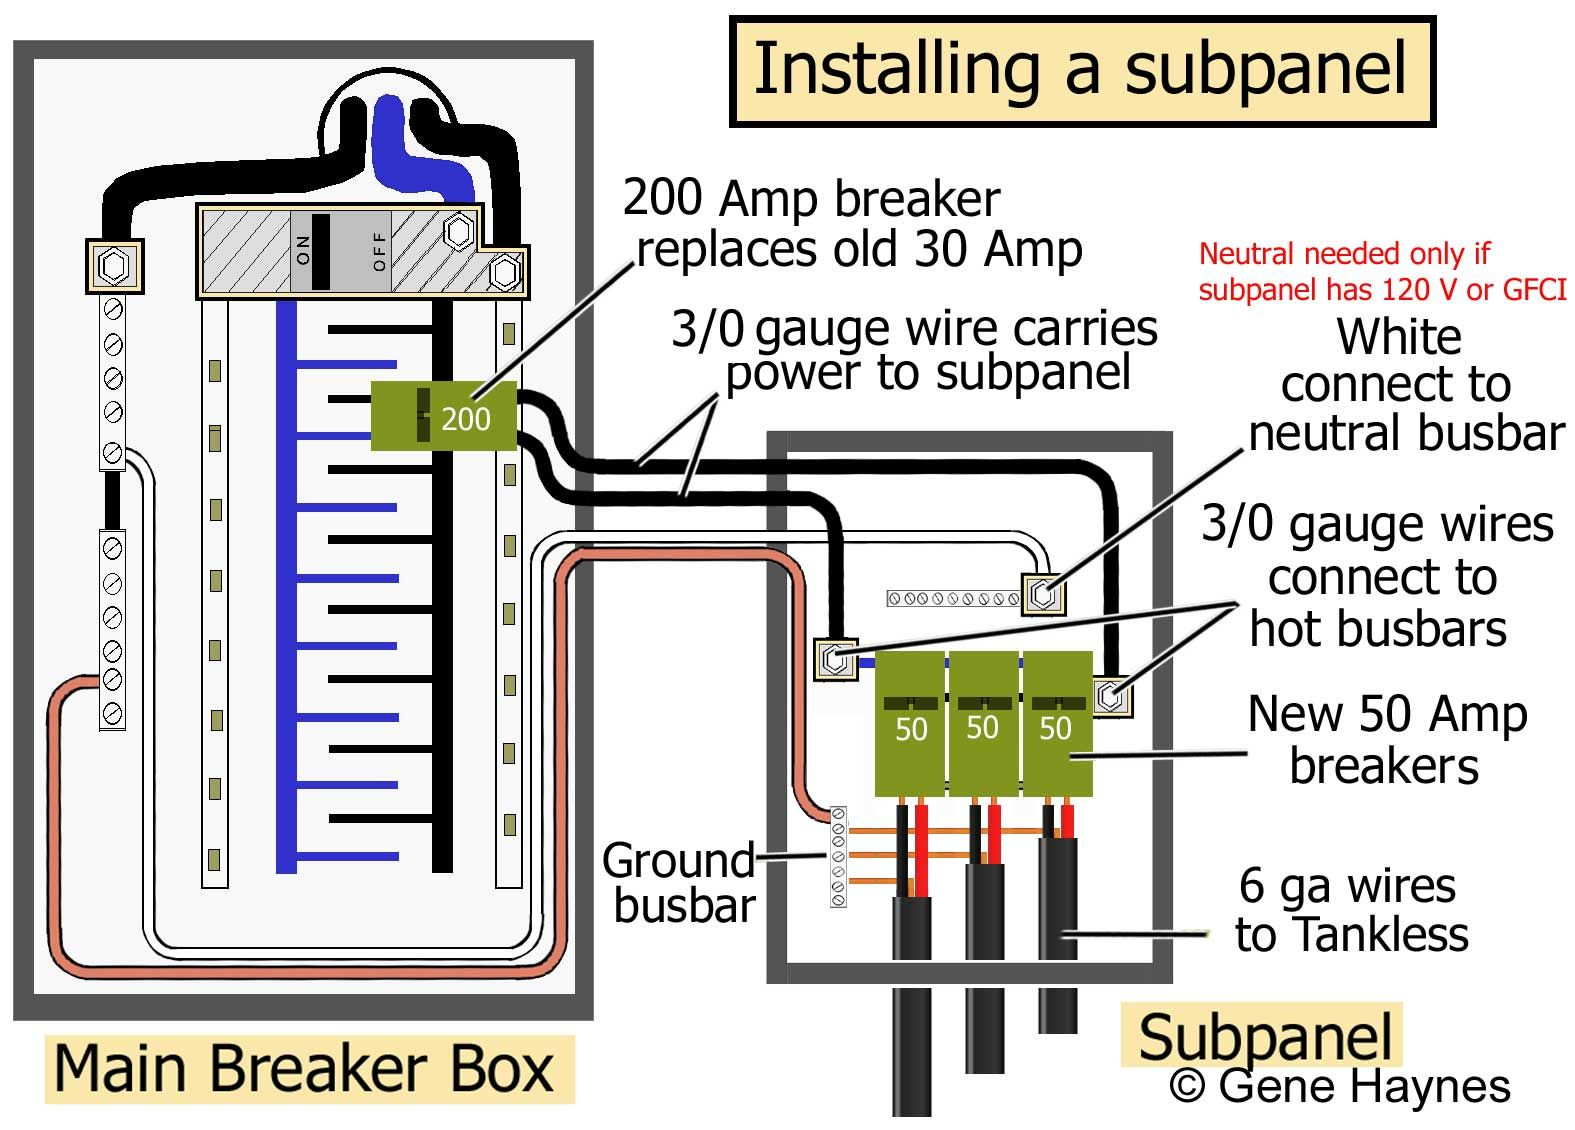 50 Amp Breaker Wiring Diagram Libraries How To Install A Circuit Sub Panel Third Levelhow Subpanel